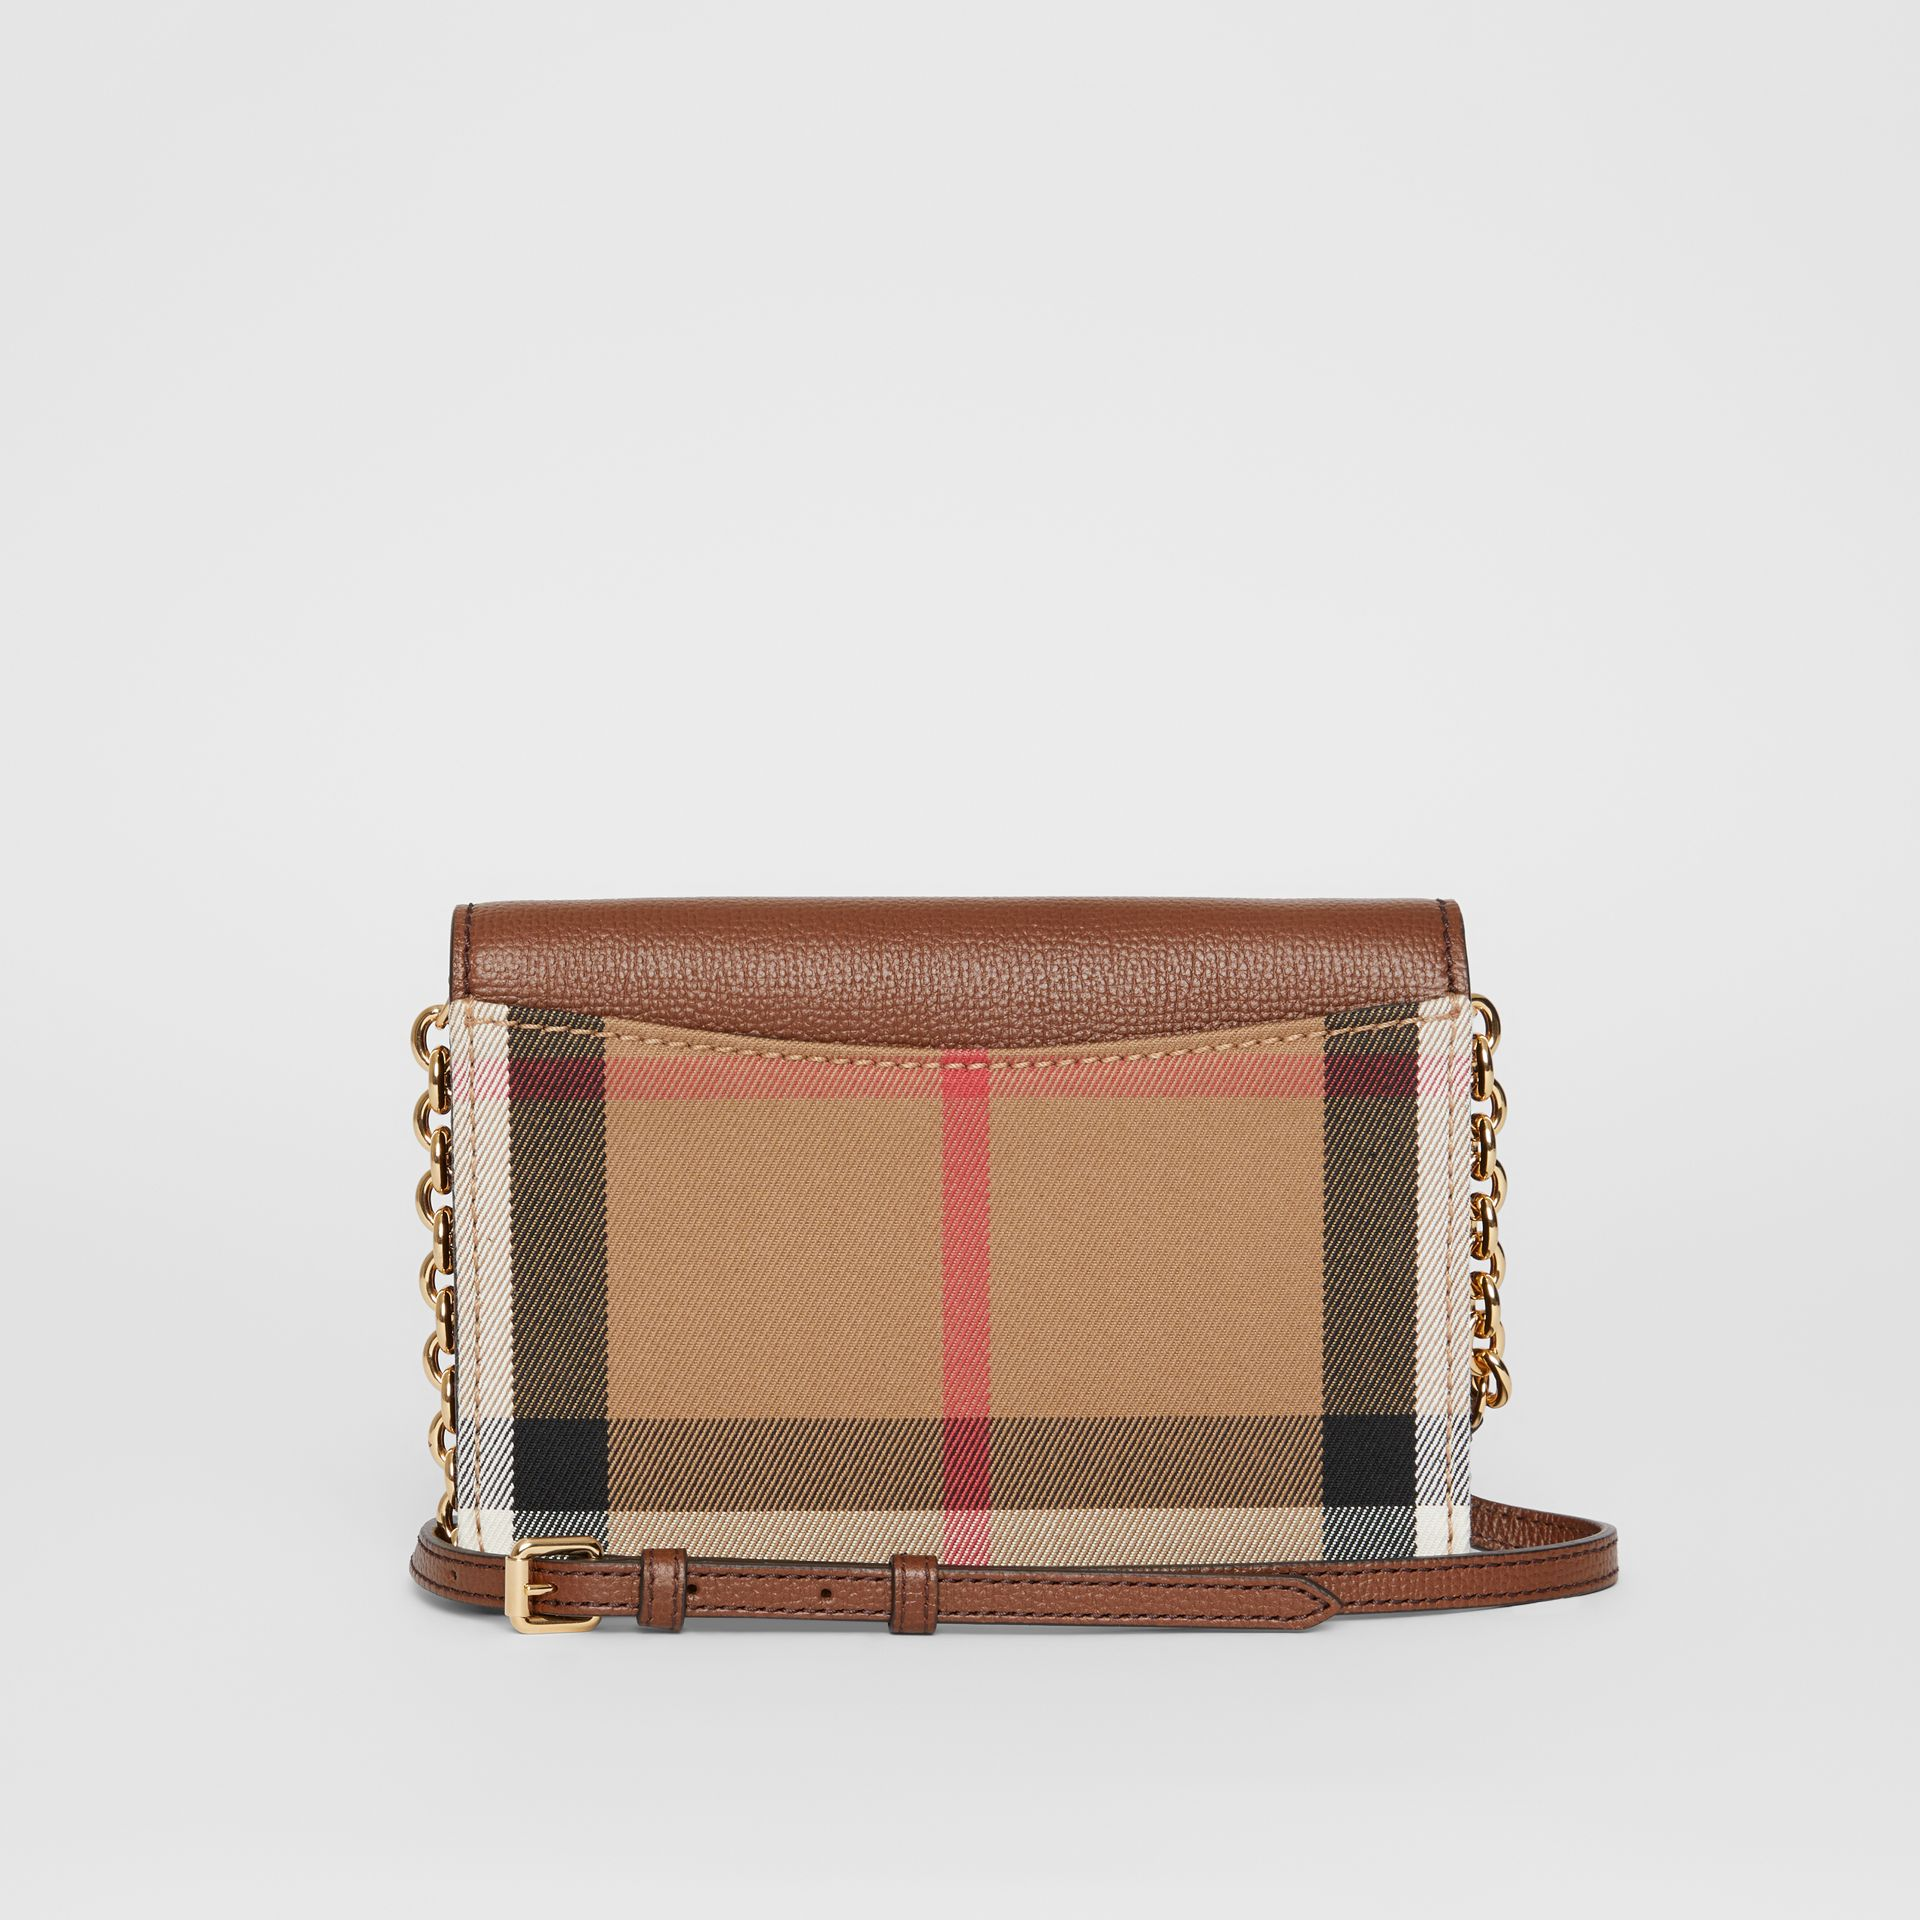 Leather and House Check Wallet with Detachable Strap in Tan - Women | Burberry United Kingdom - gallery image 7